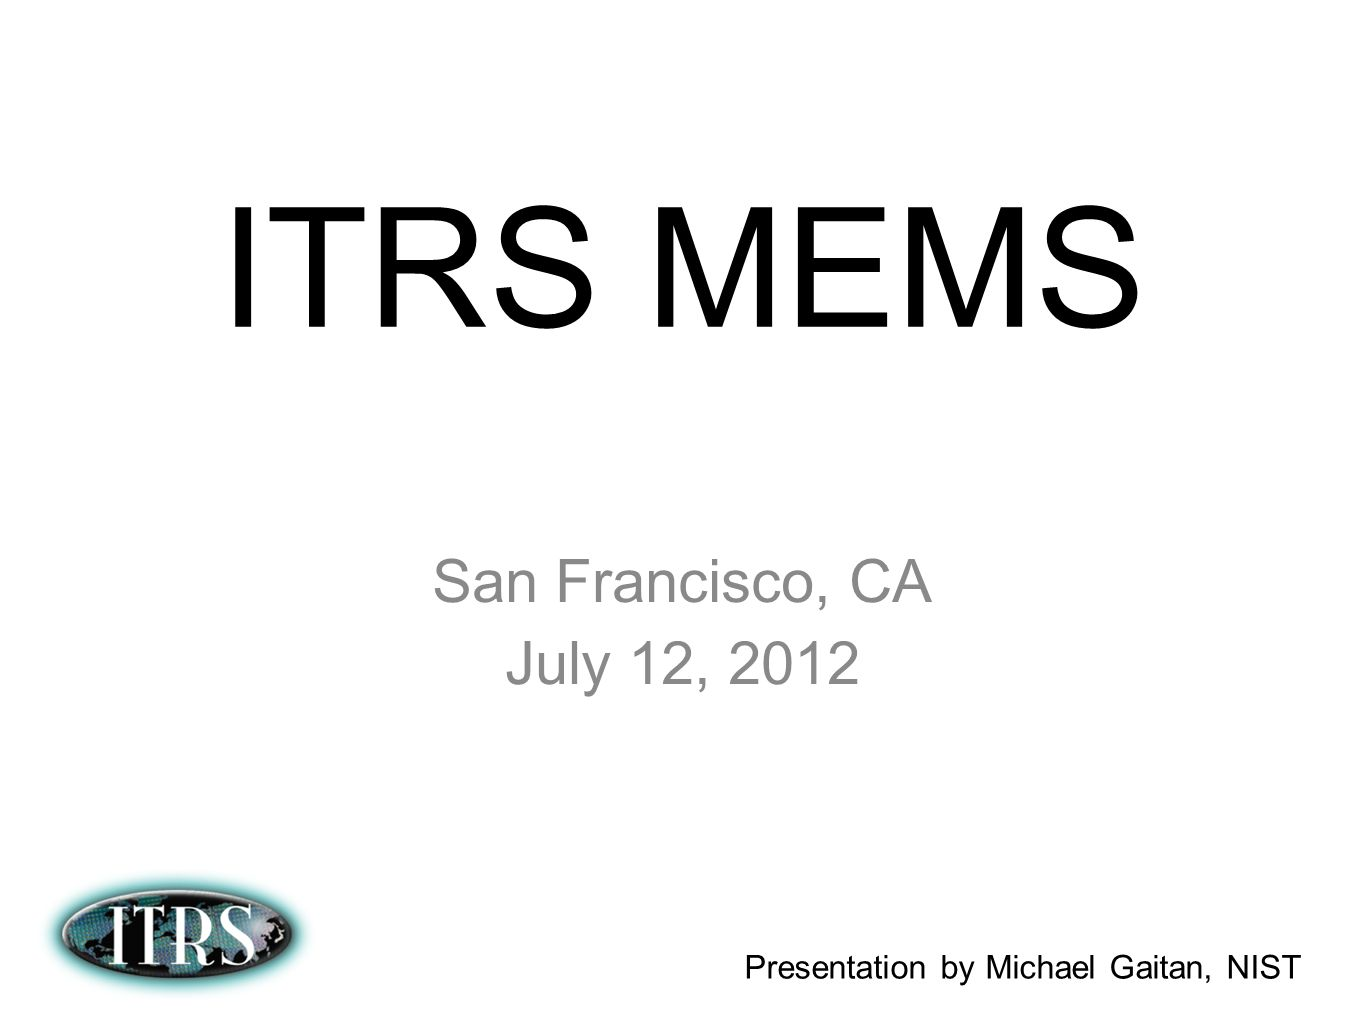 ITRS MEMS San Francisco, CA July 12, 2012